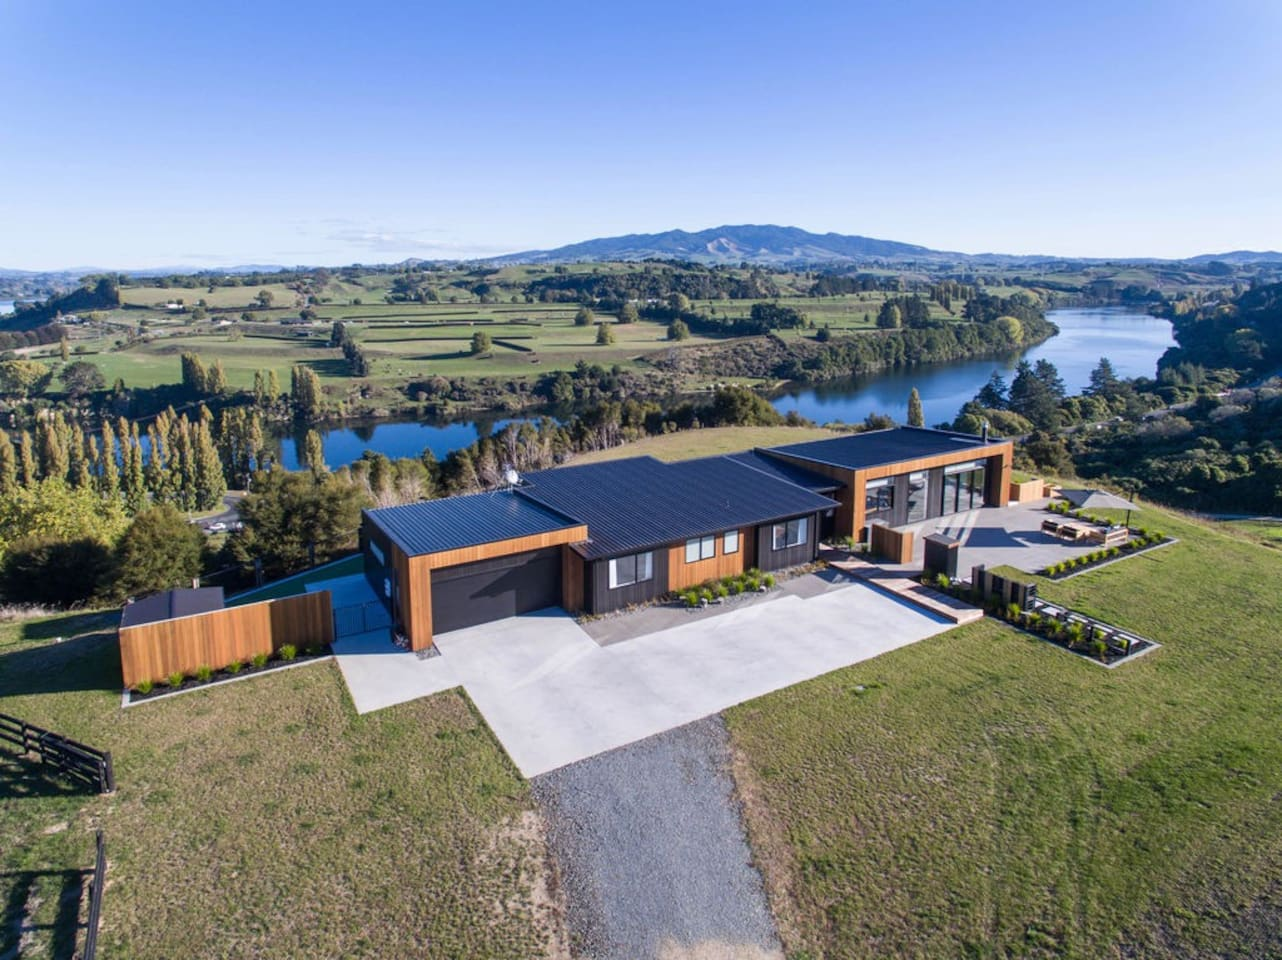 Loch Vue - expansive views of the Waikato River